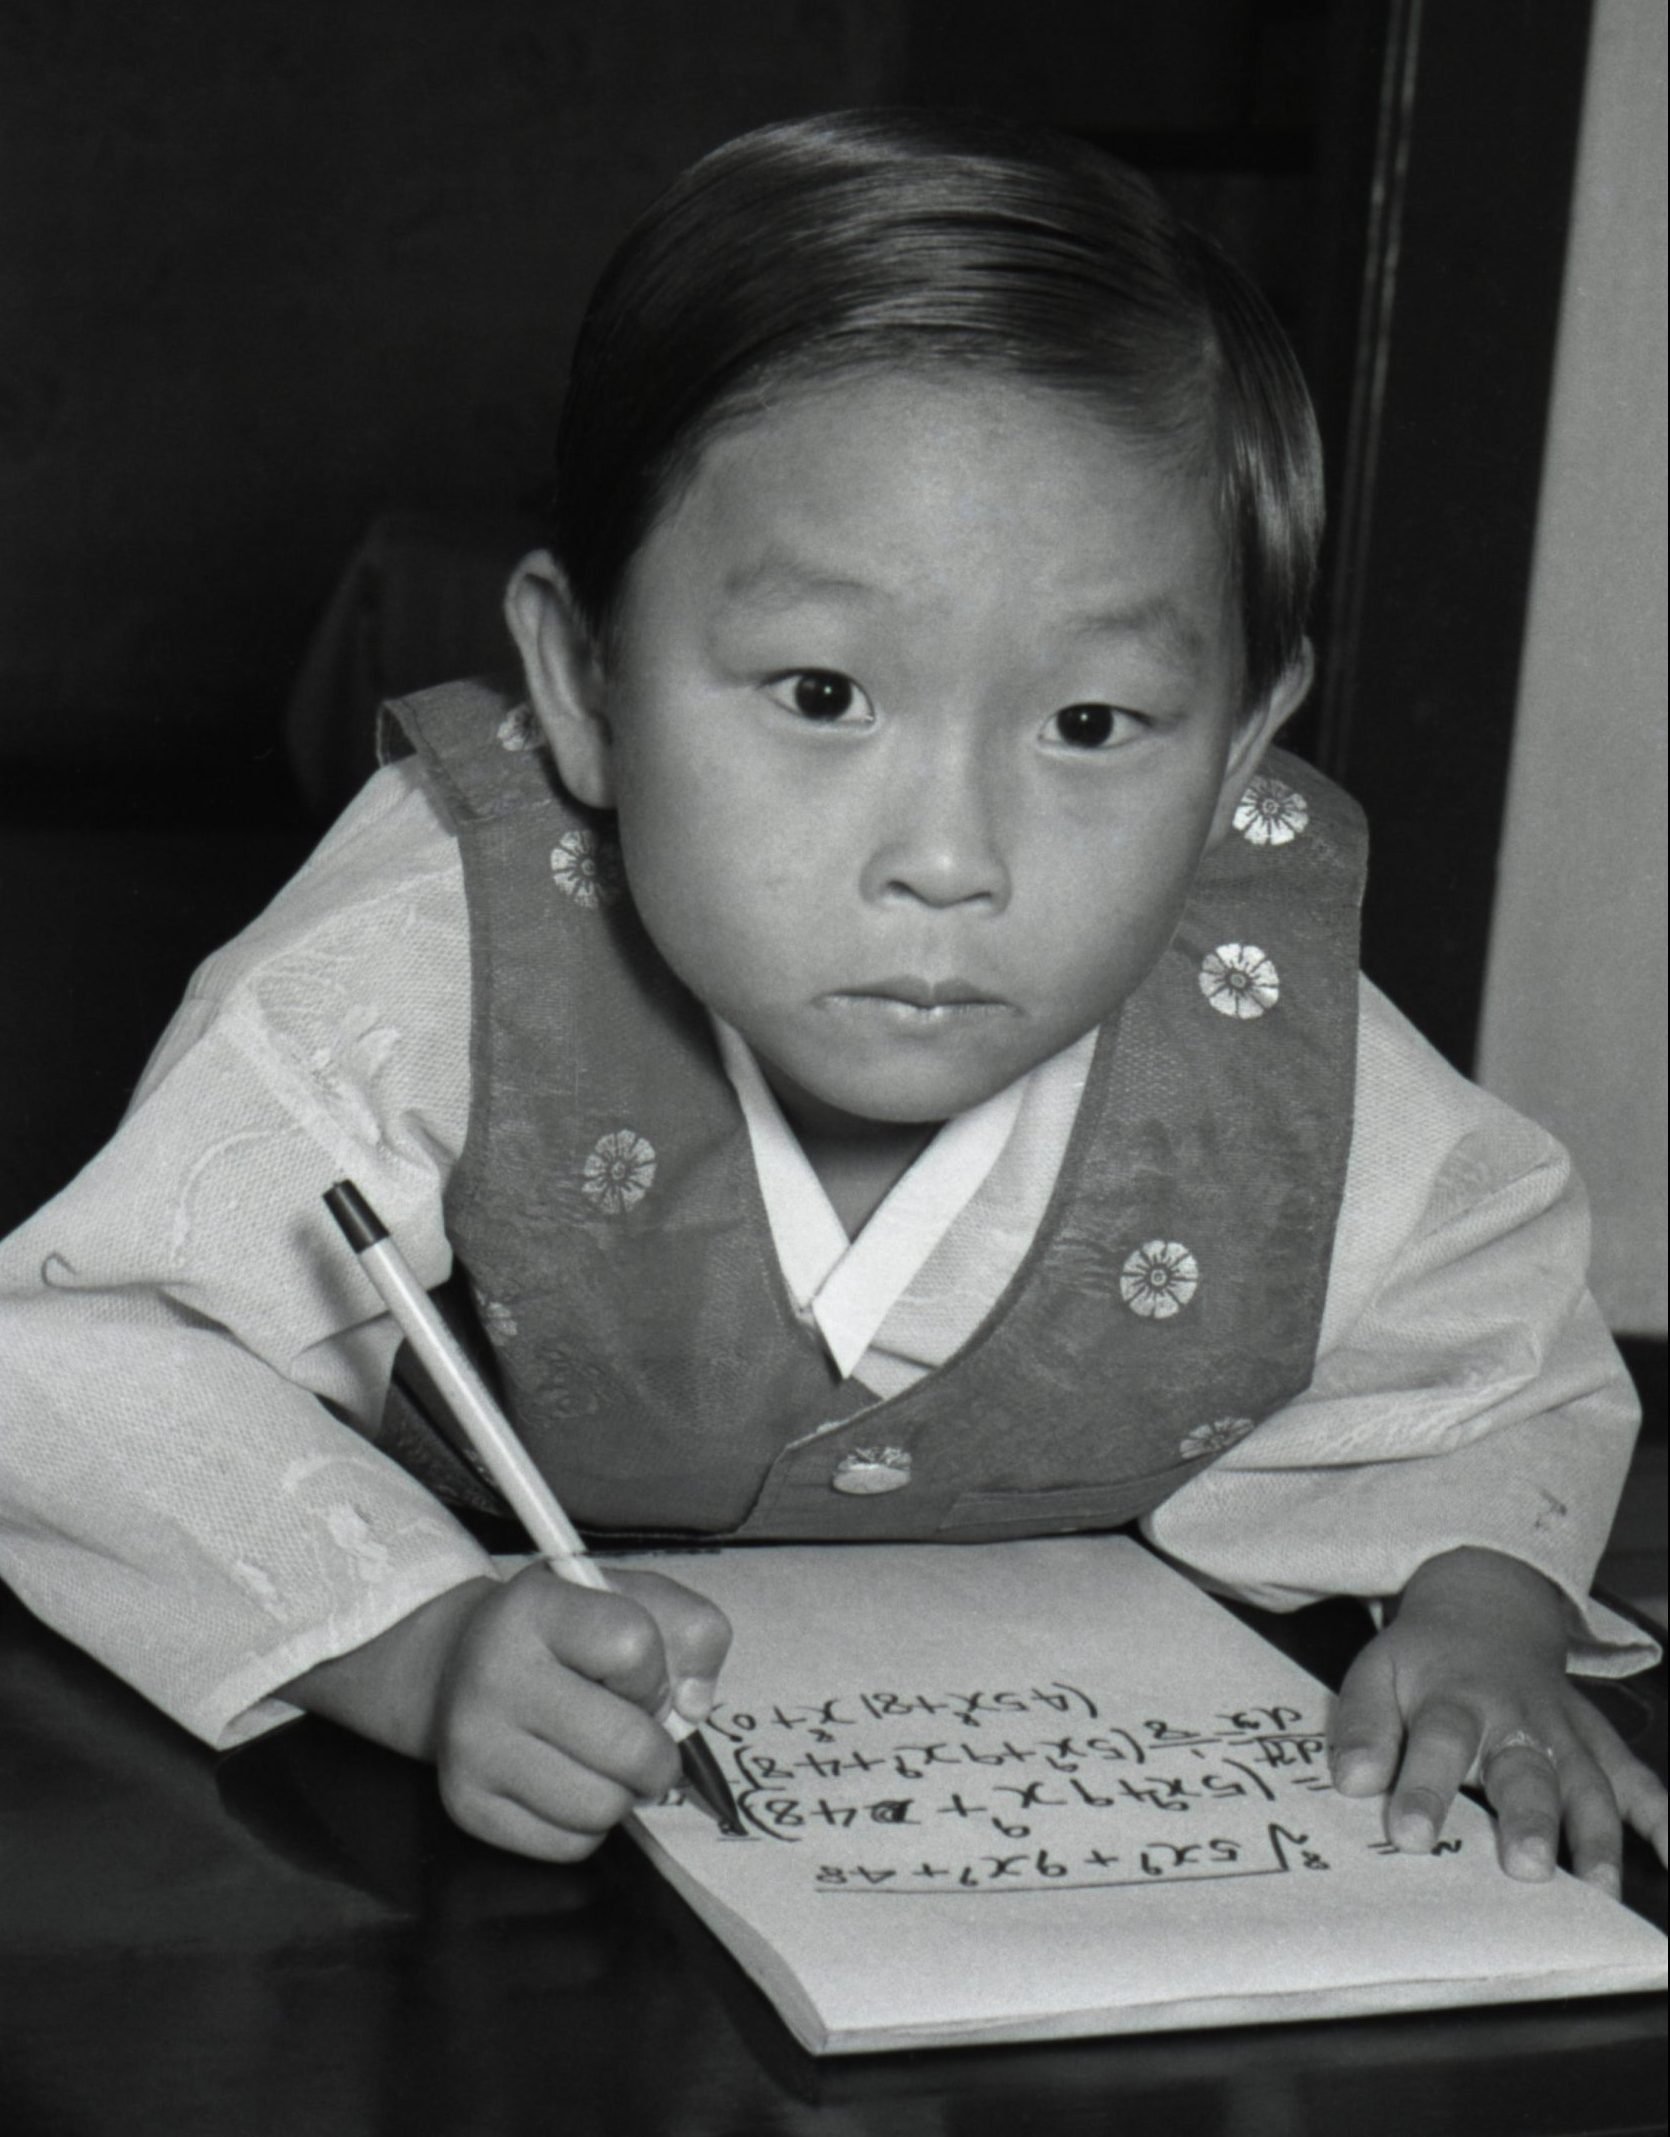 Kim Ung-Yong at age 6 months solving equations